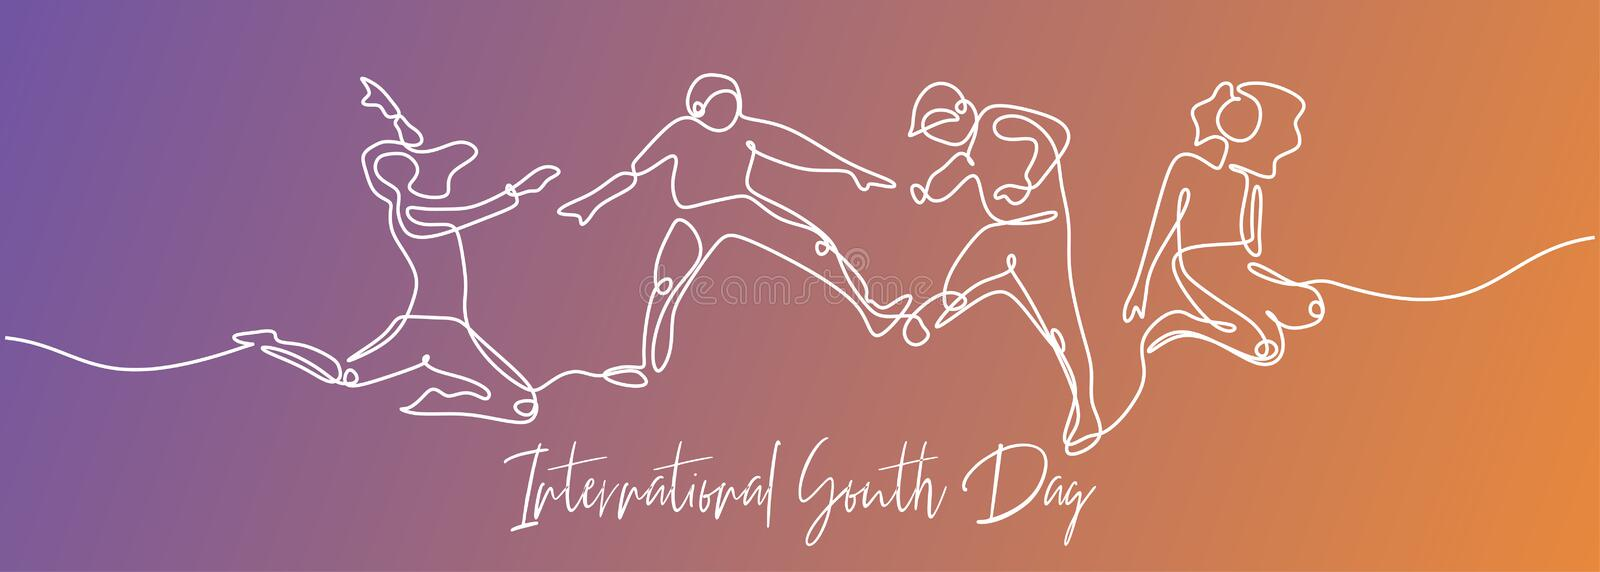 One line drawing of people jump for International youth day continuous hand drawn single lineart design minimalism style vector stock illustration